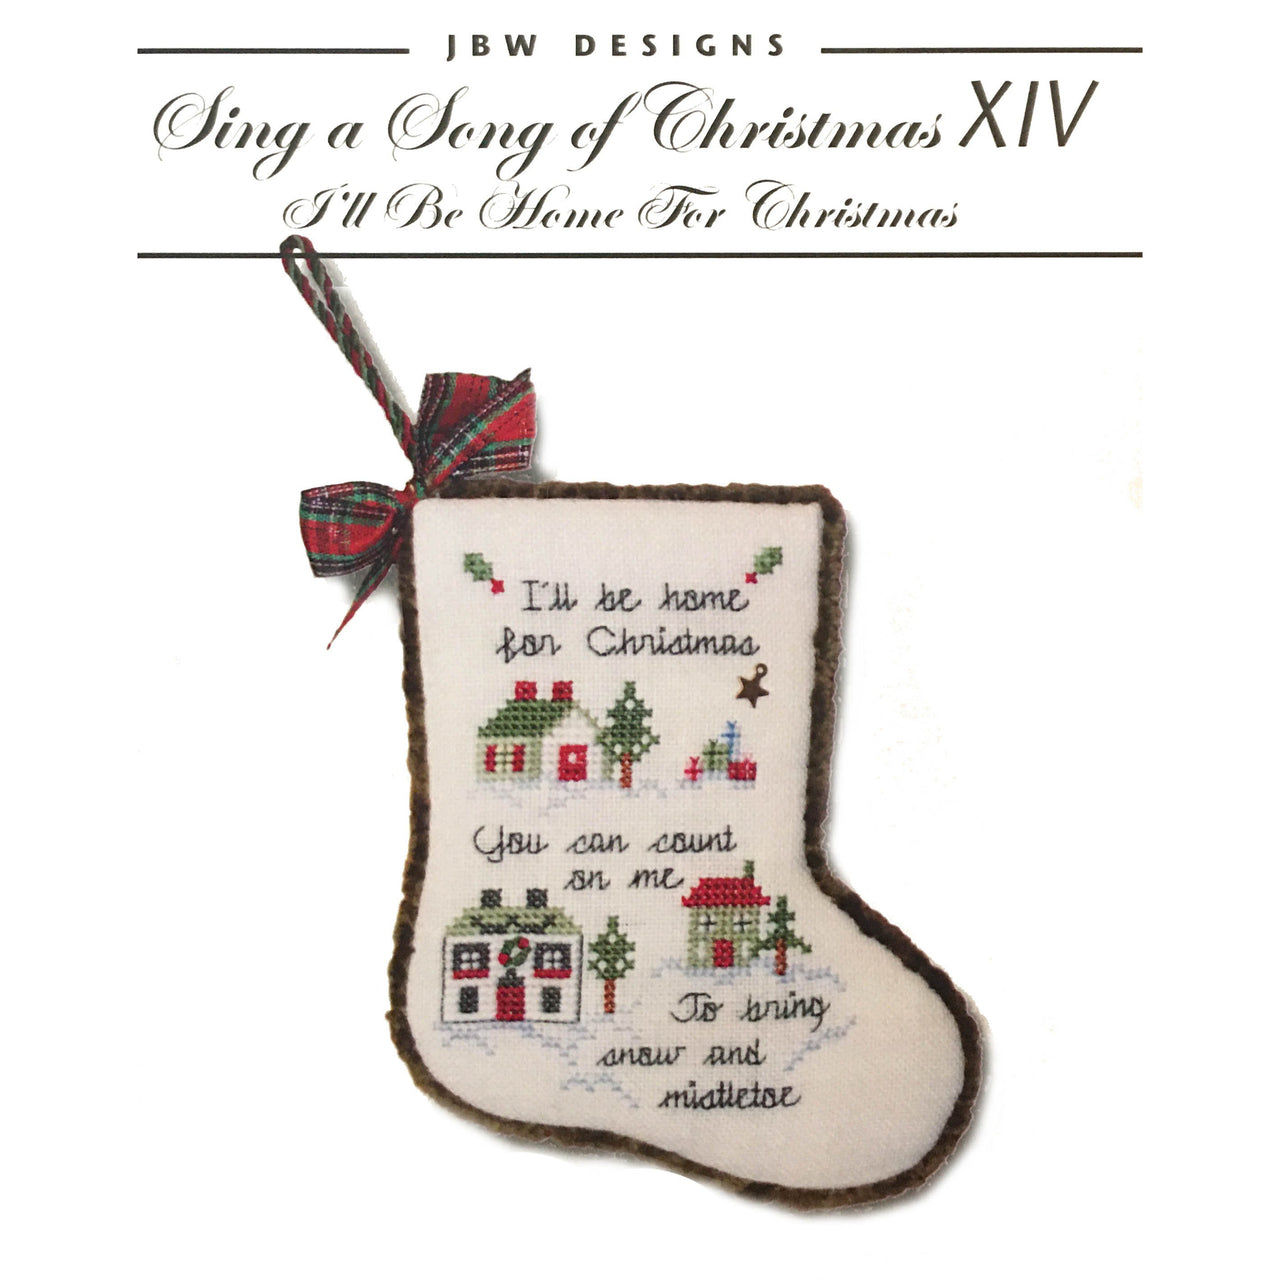 Sing a Song of Christmas XIV: Home for Christmas Pattern